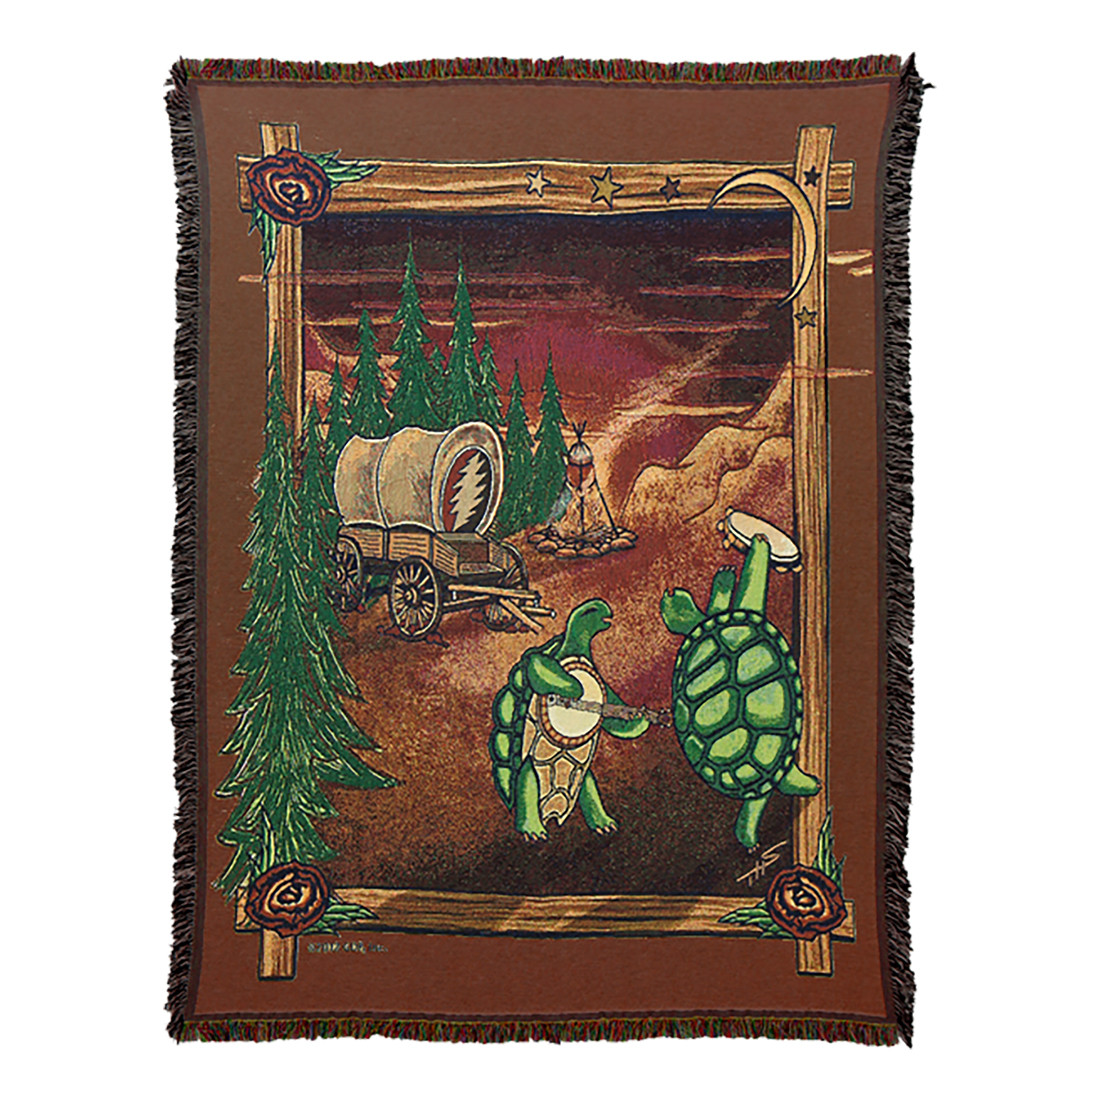 GD Covered Wagon Woven Blanket